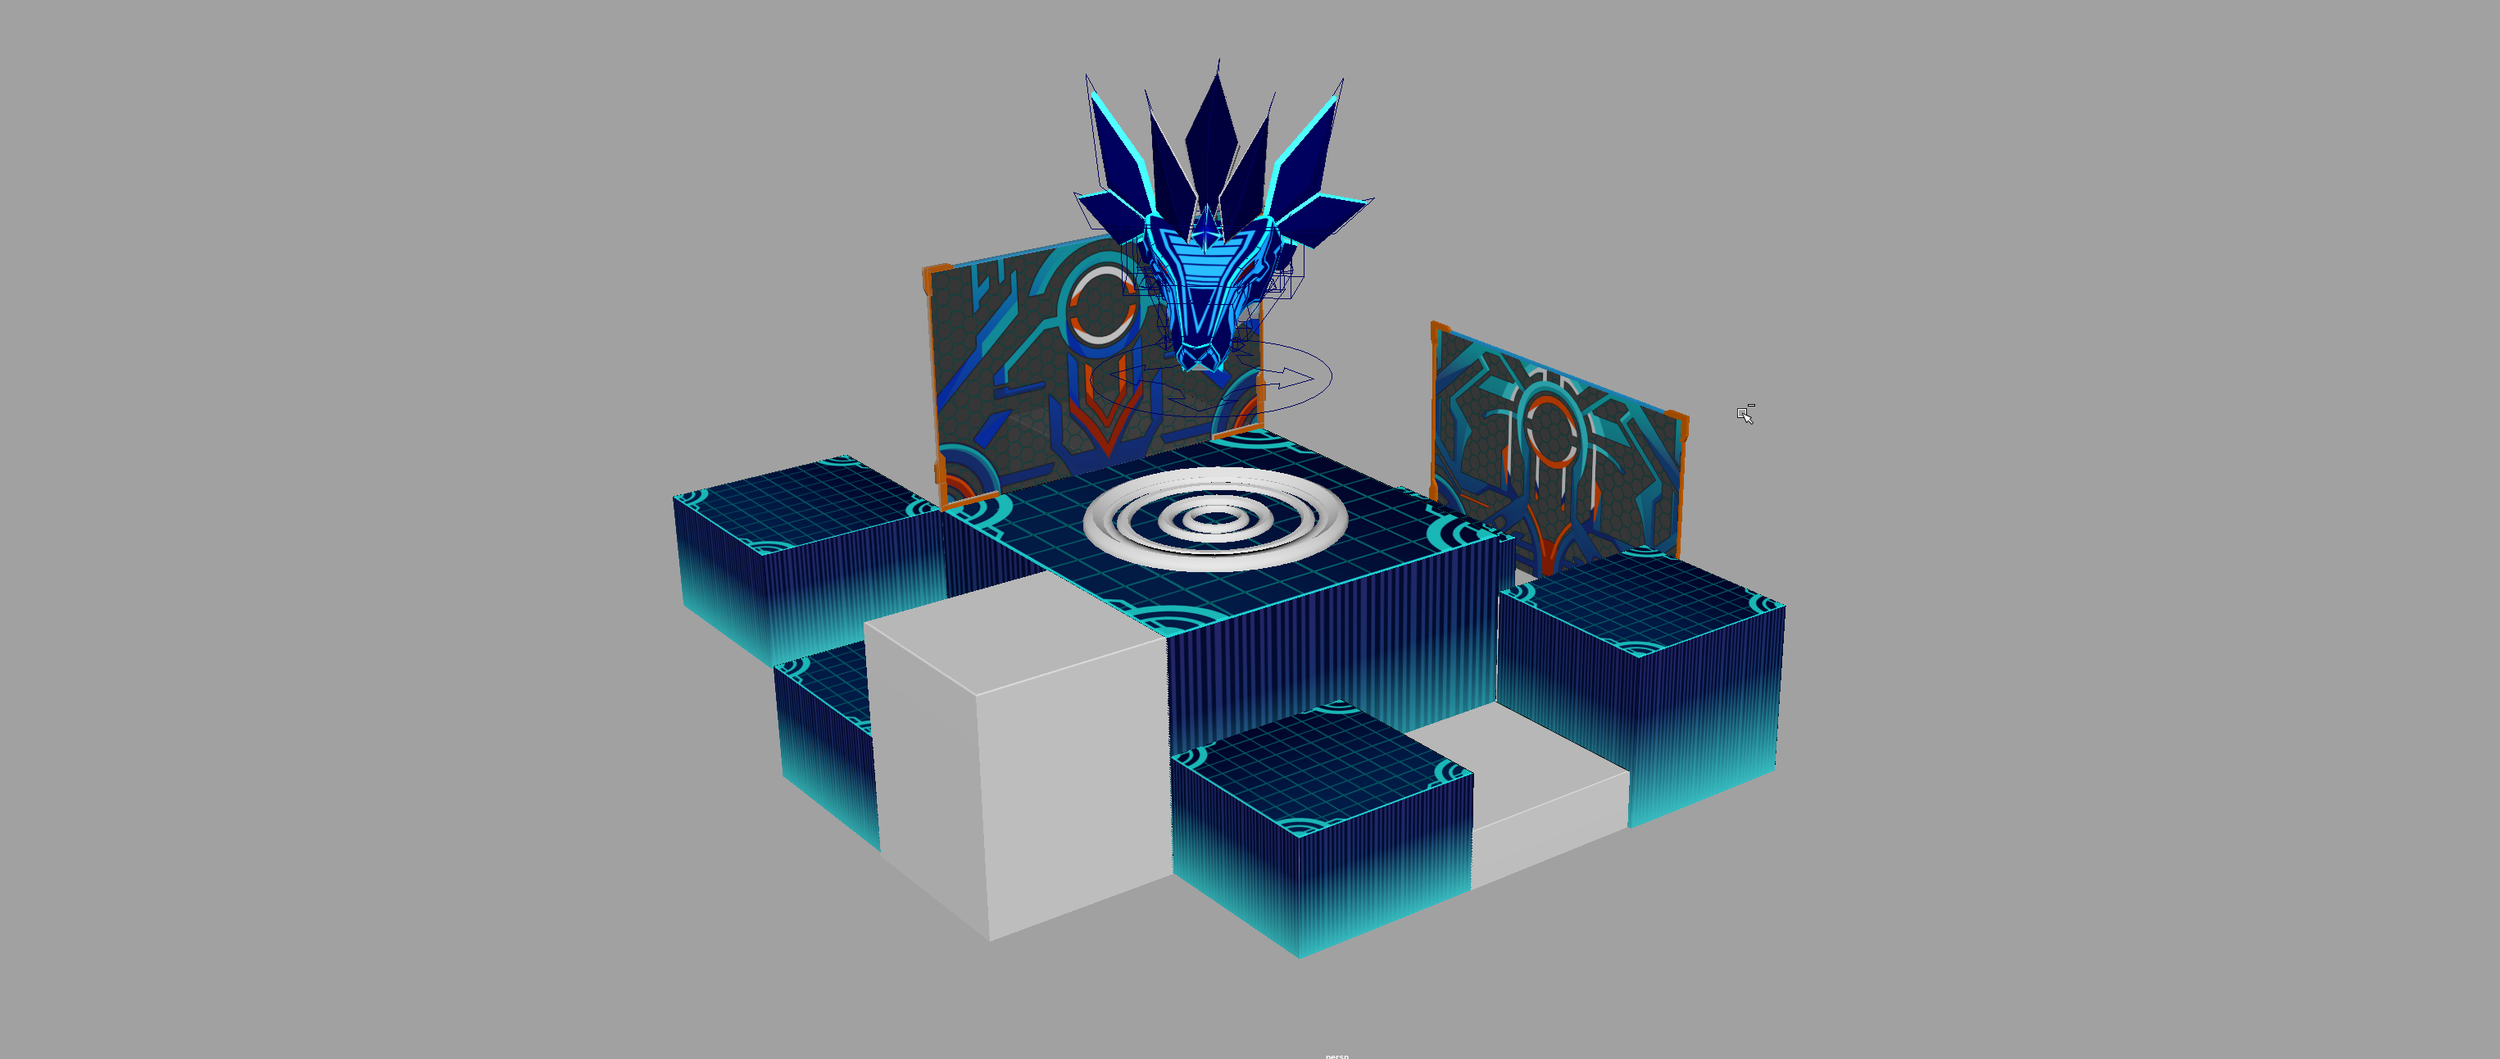 Neon_AR_Poster 3DSetup(3).png